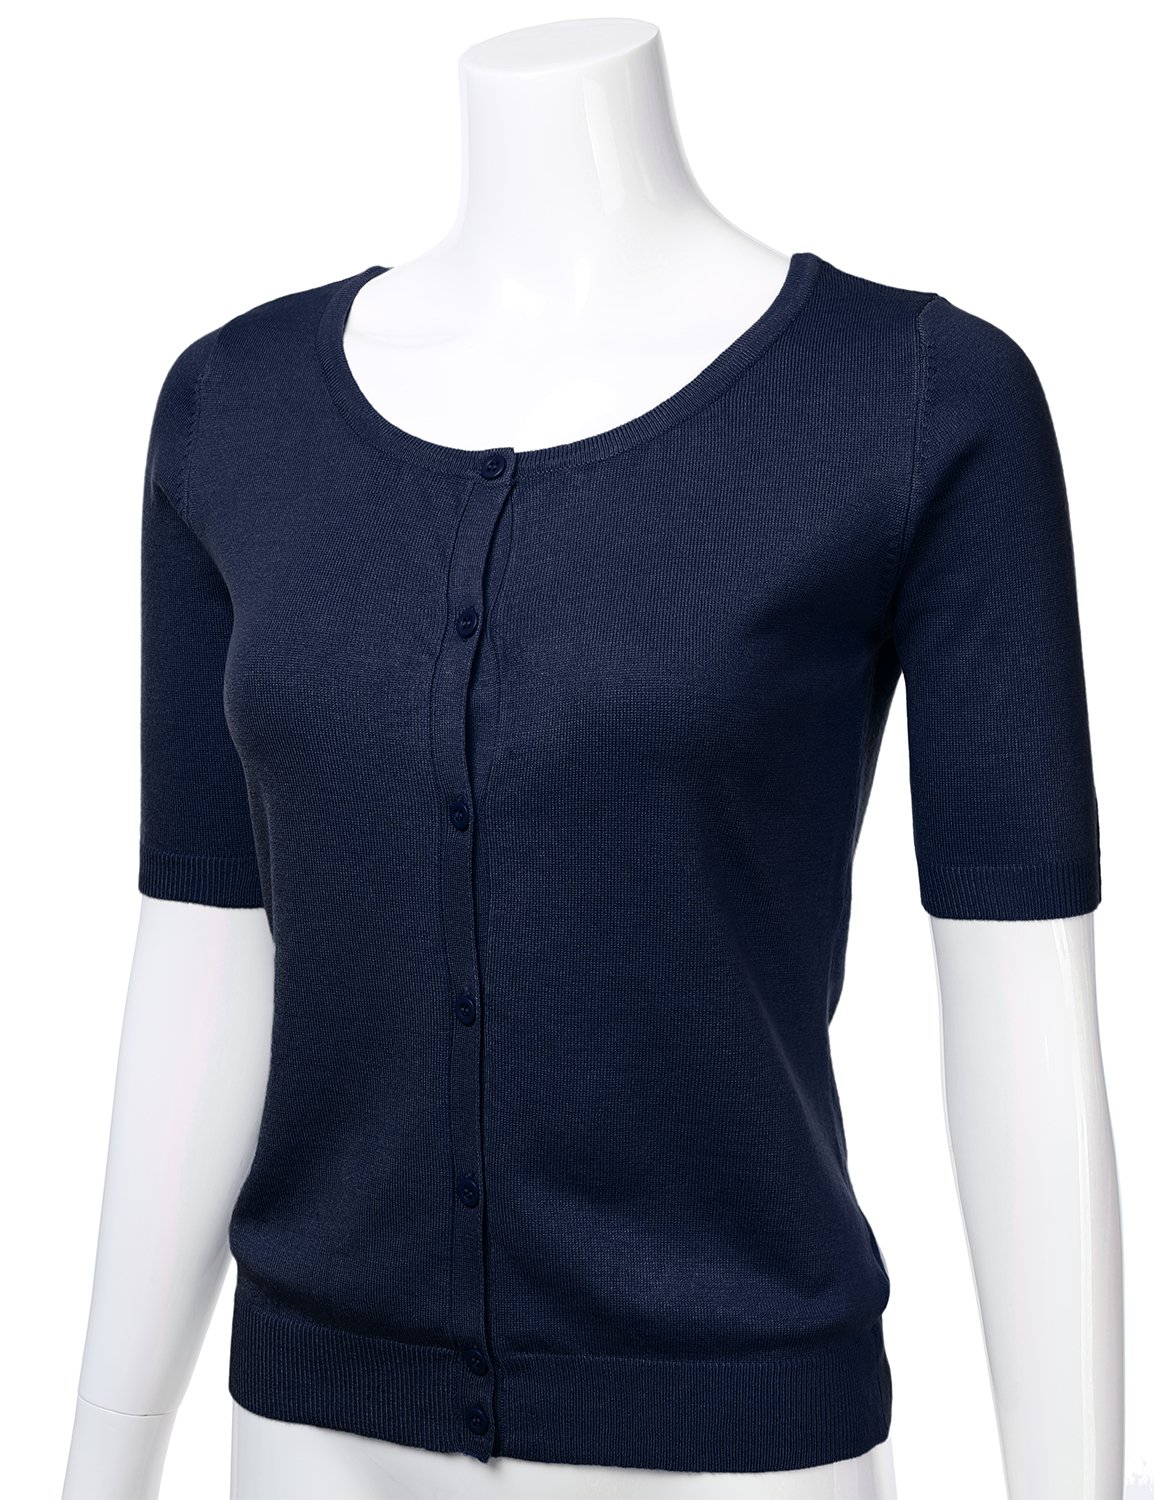 FLORIA Womens Button Down Fitted Short Sleeve Fine Knit Top Cardigan Sweater Navy L by FLORIA (Image #2)